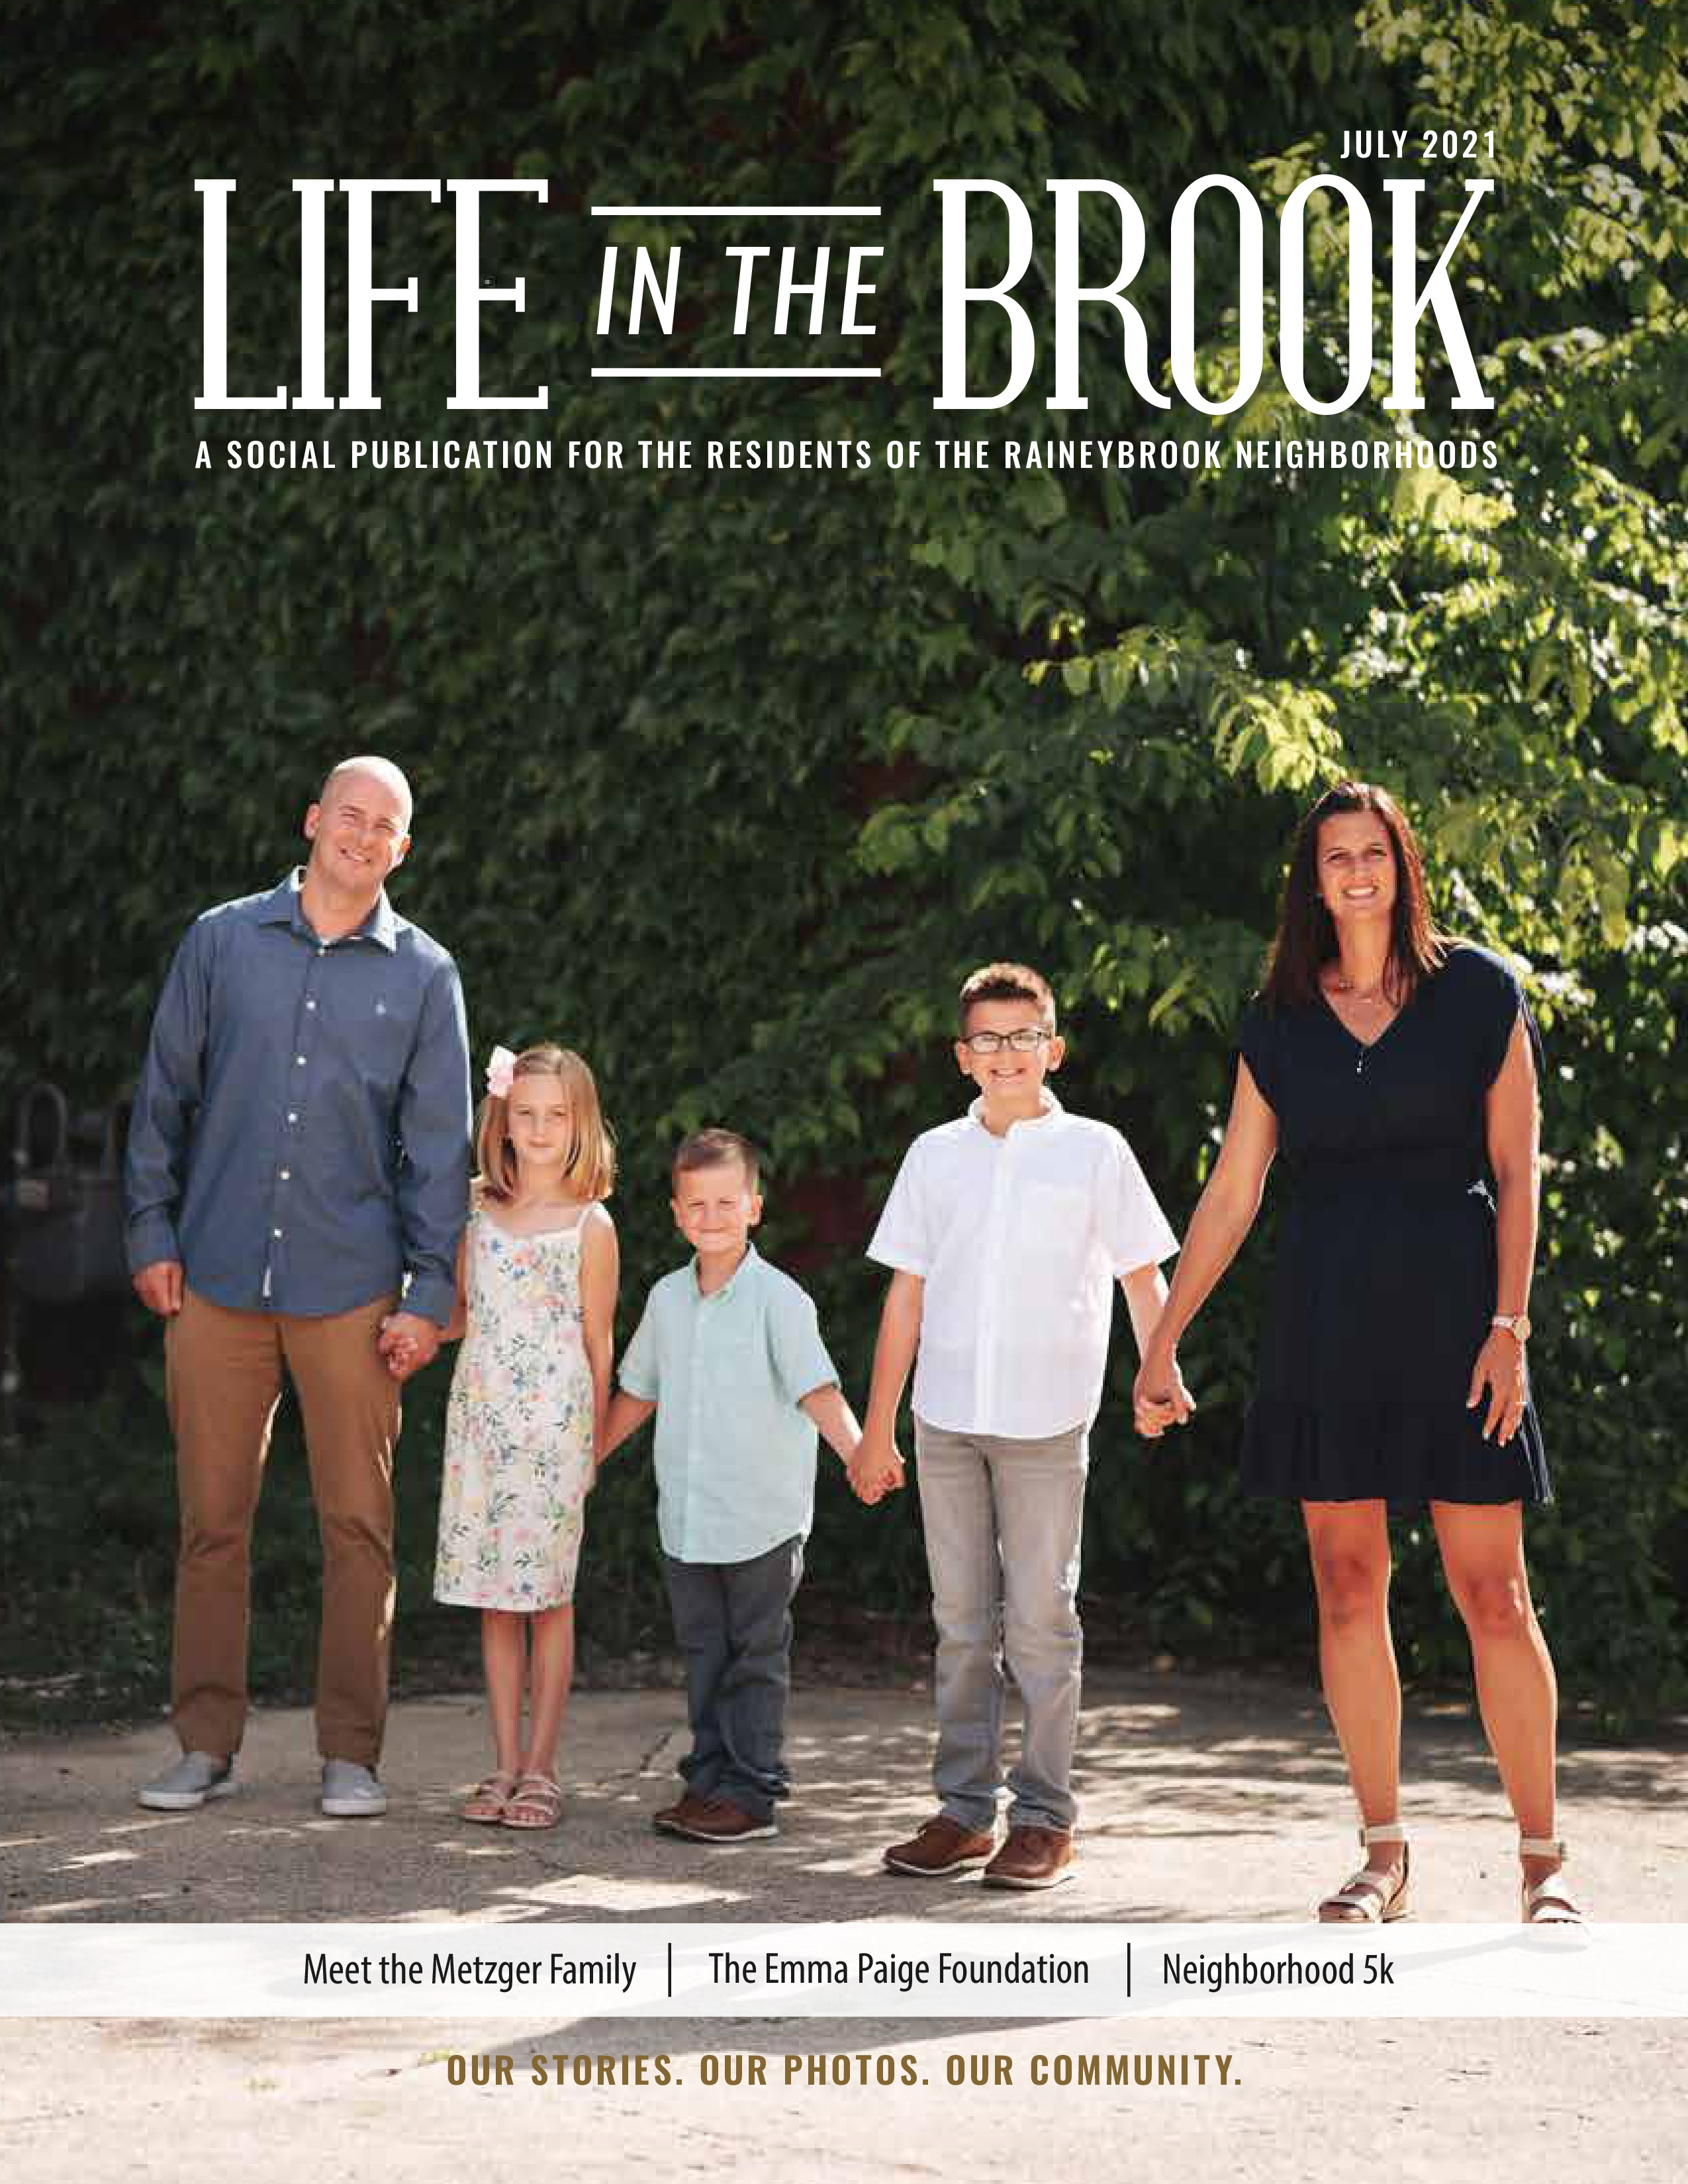 Life in the Brook 2021-07-01